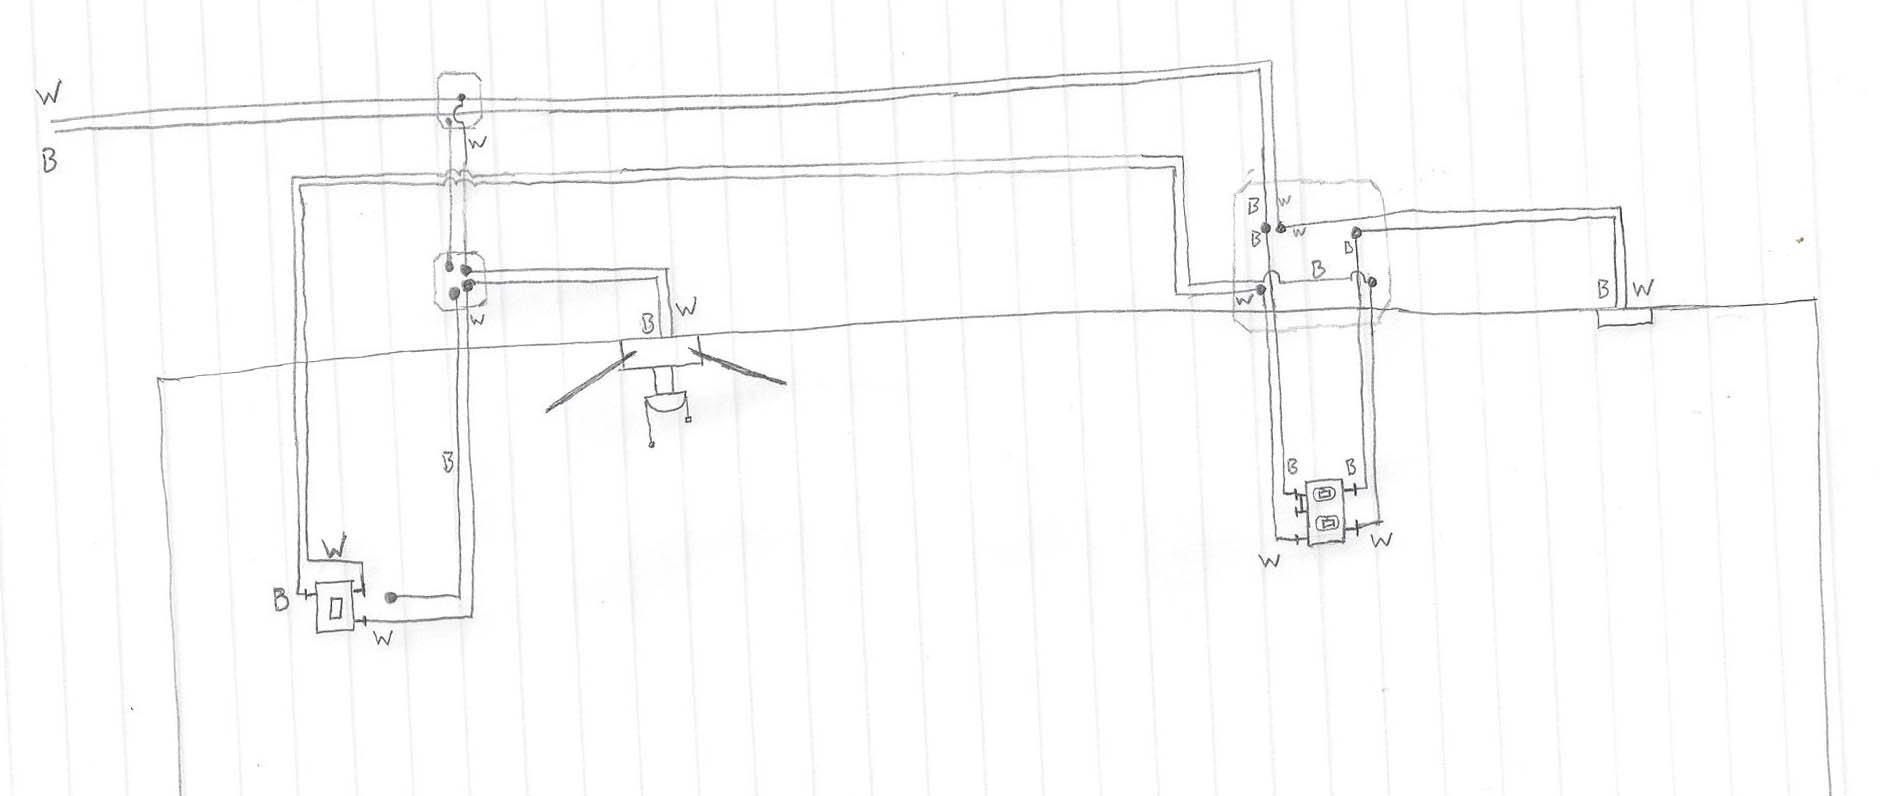 [WRG-4083] Wiring Diagram 3 Way 1 Pole